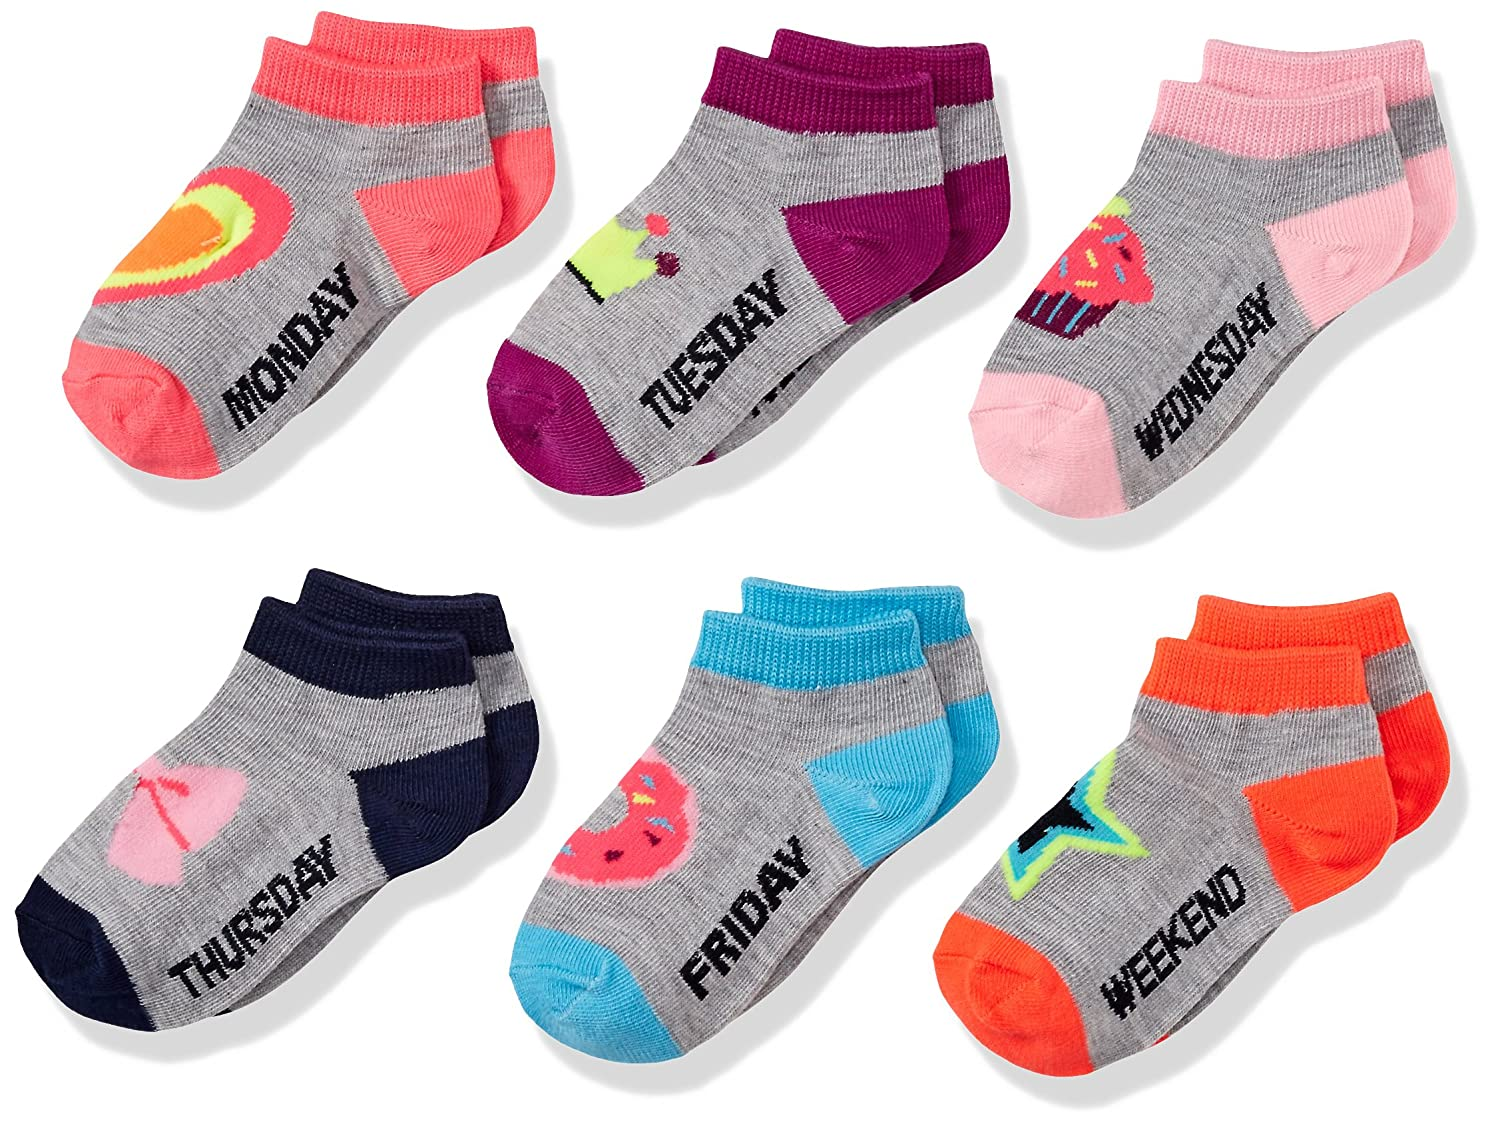 Limited Too girls 6 Pack Girls Low Cut Sock Assorted 9-11 Limited Too Children' s Apparel Child Code LIM68152-459